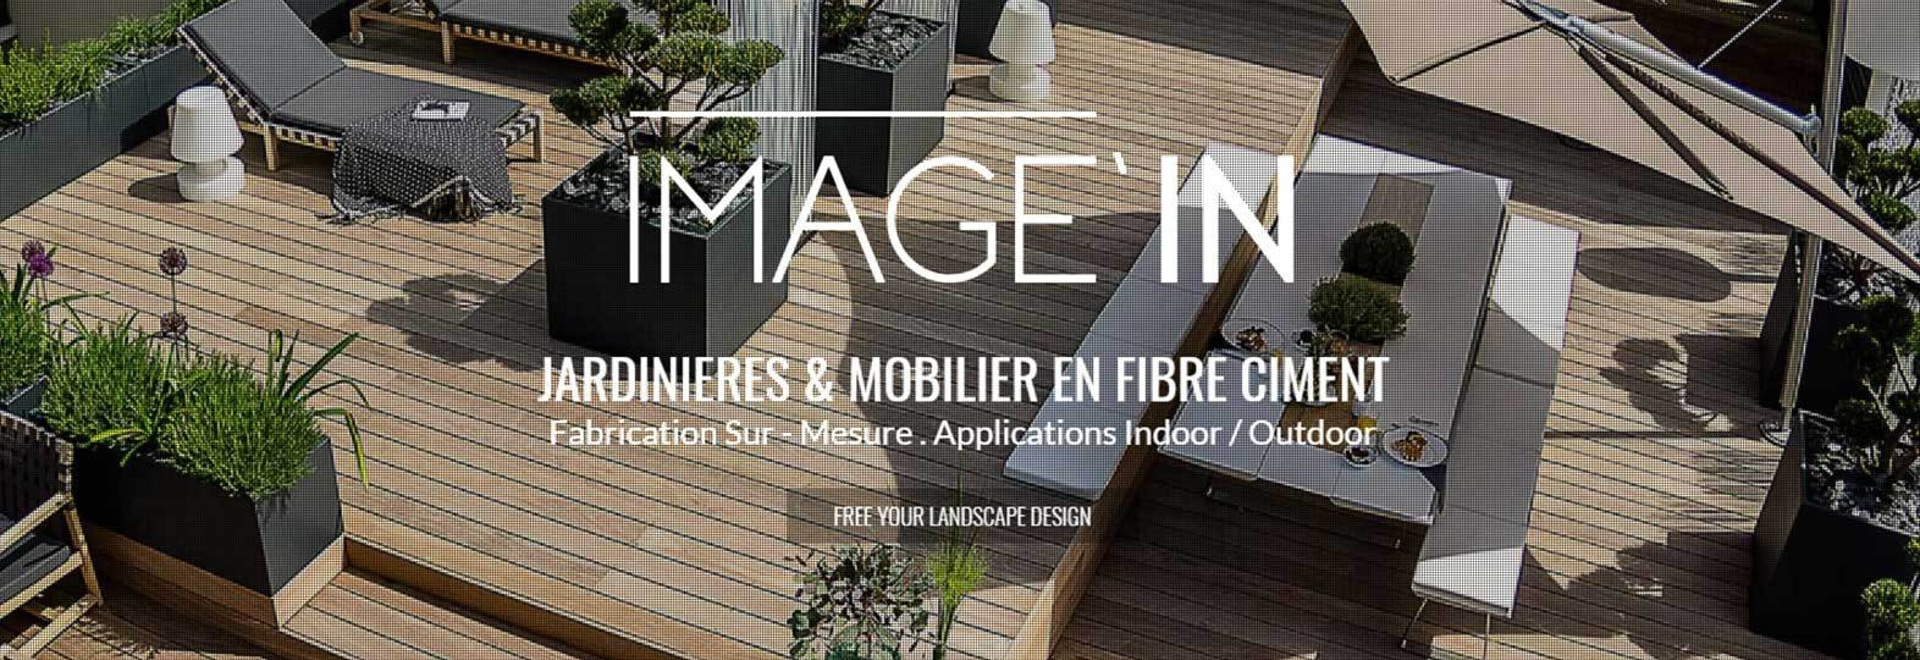 Mobilier De France Chalons En Champagne a new website for atelier so green - 37800 sainte-maure-de